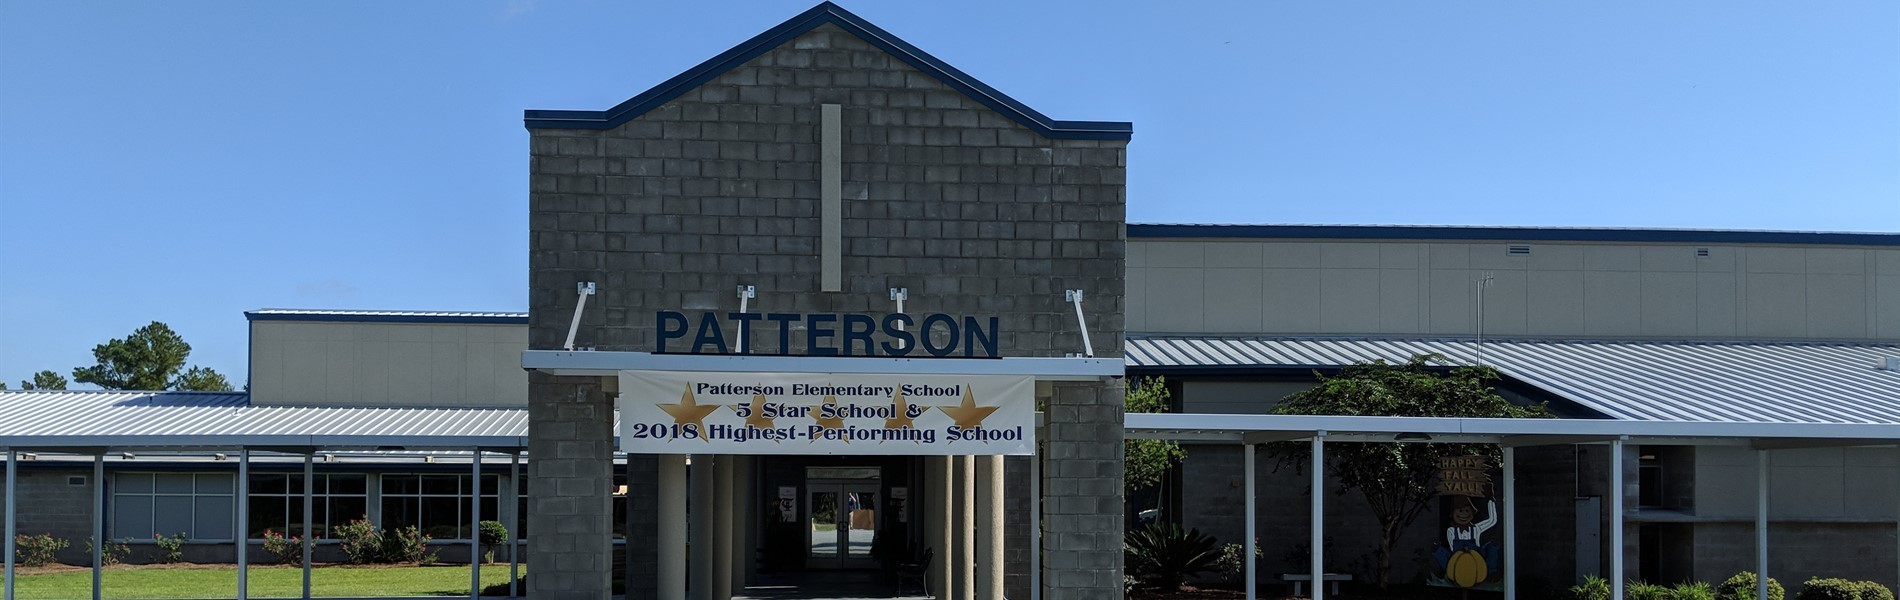 Front entrance of Patterson Elementary School